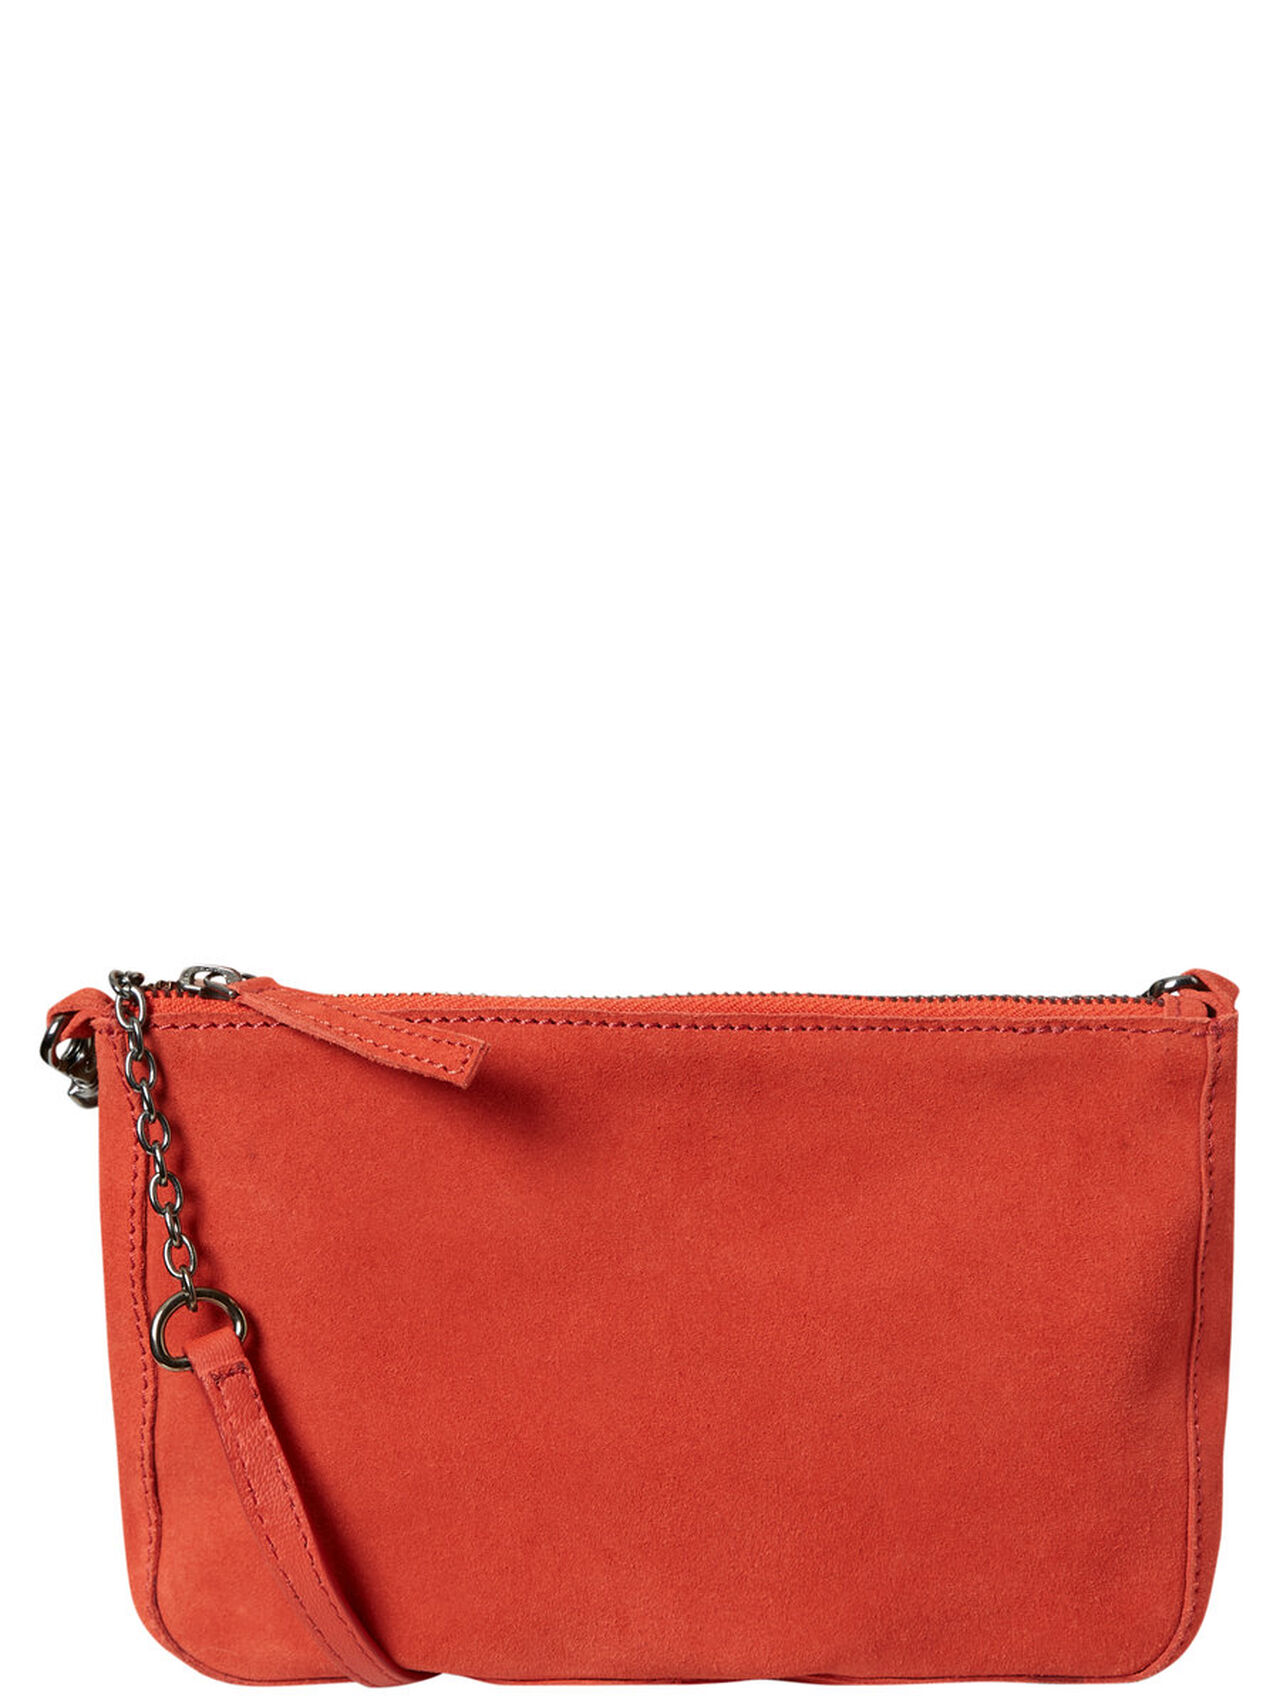 VERO MODA Small Suede Crossbody Bag Women Red